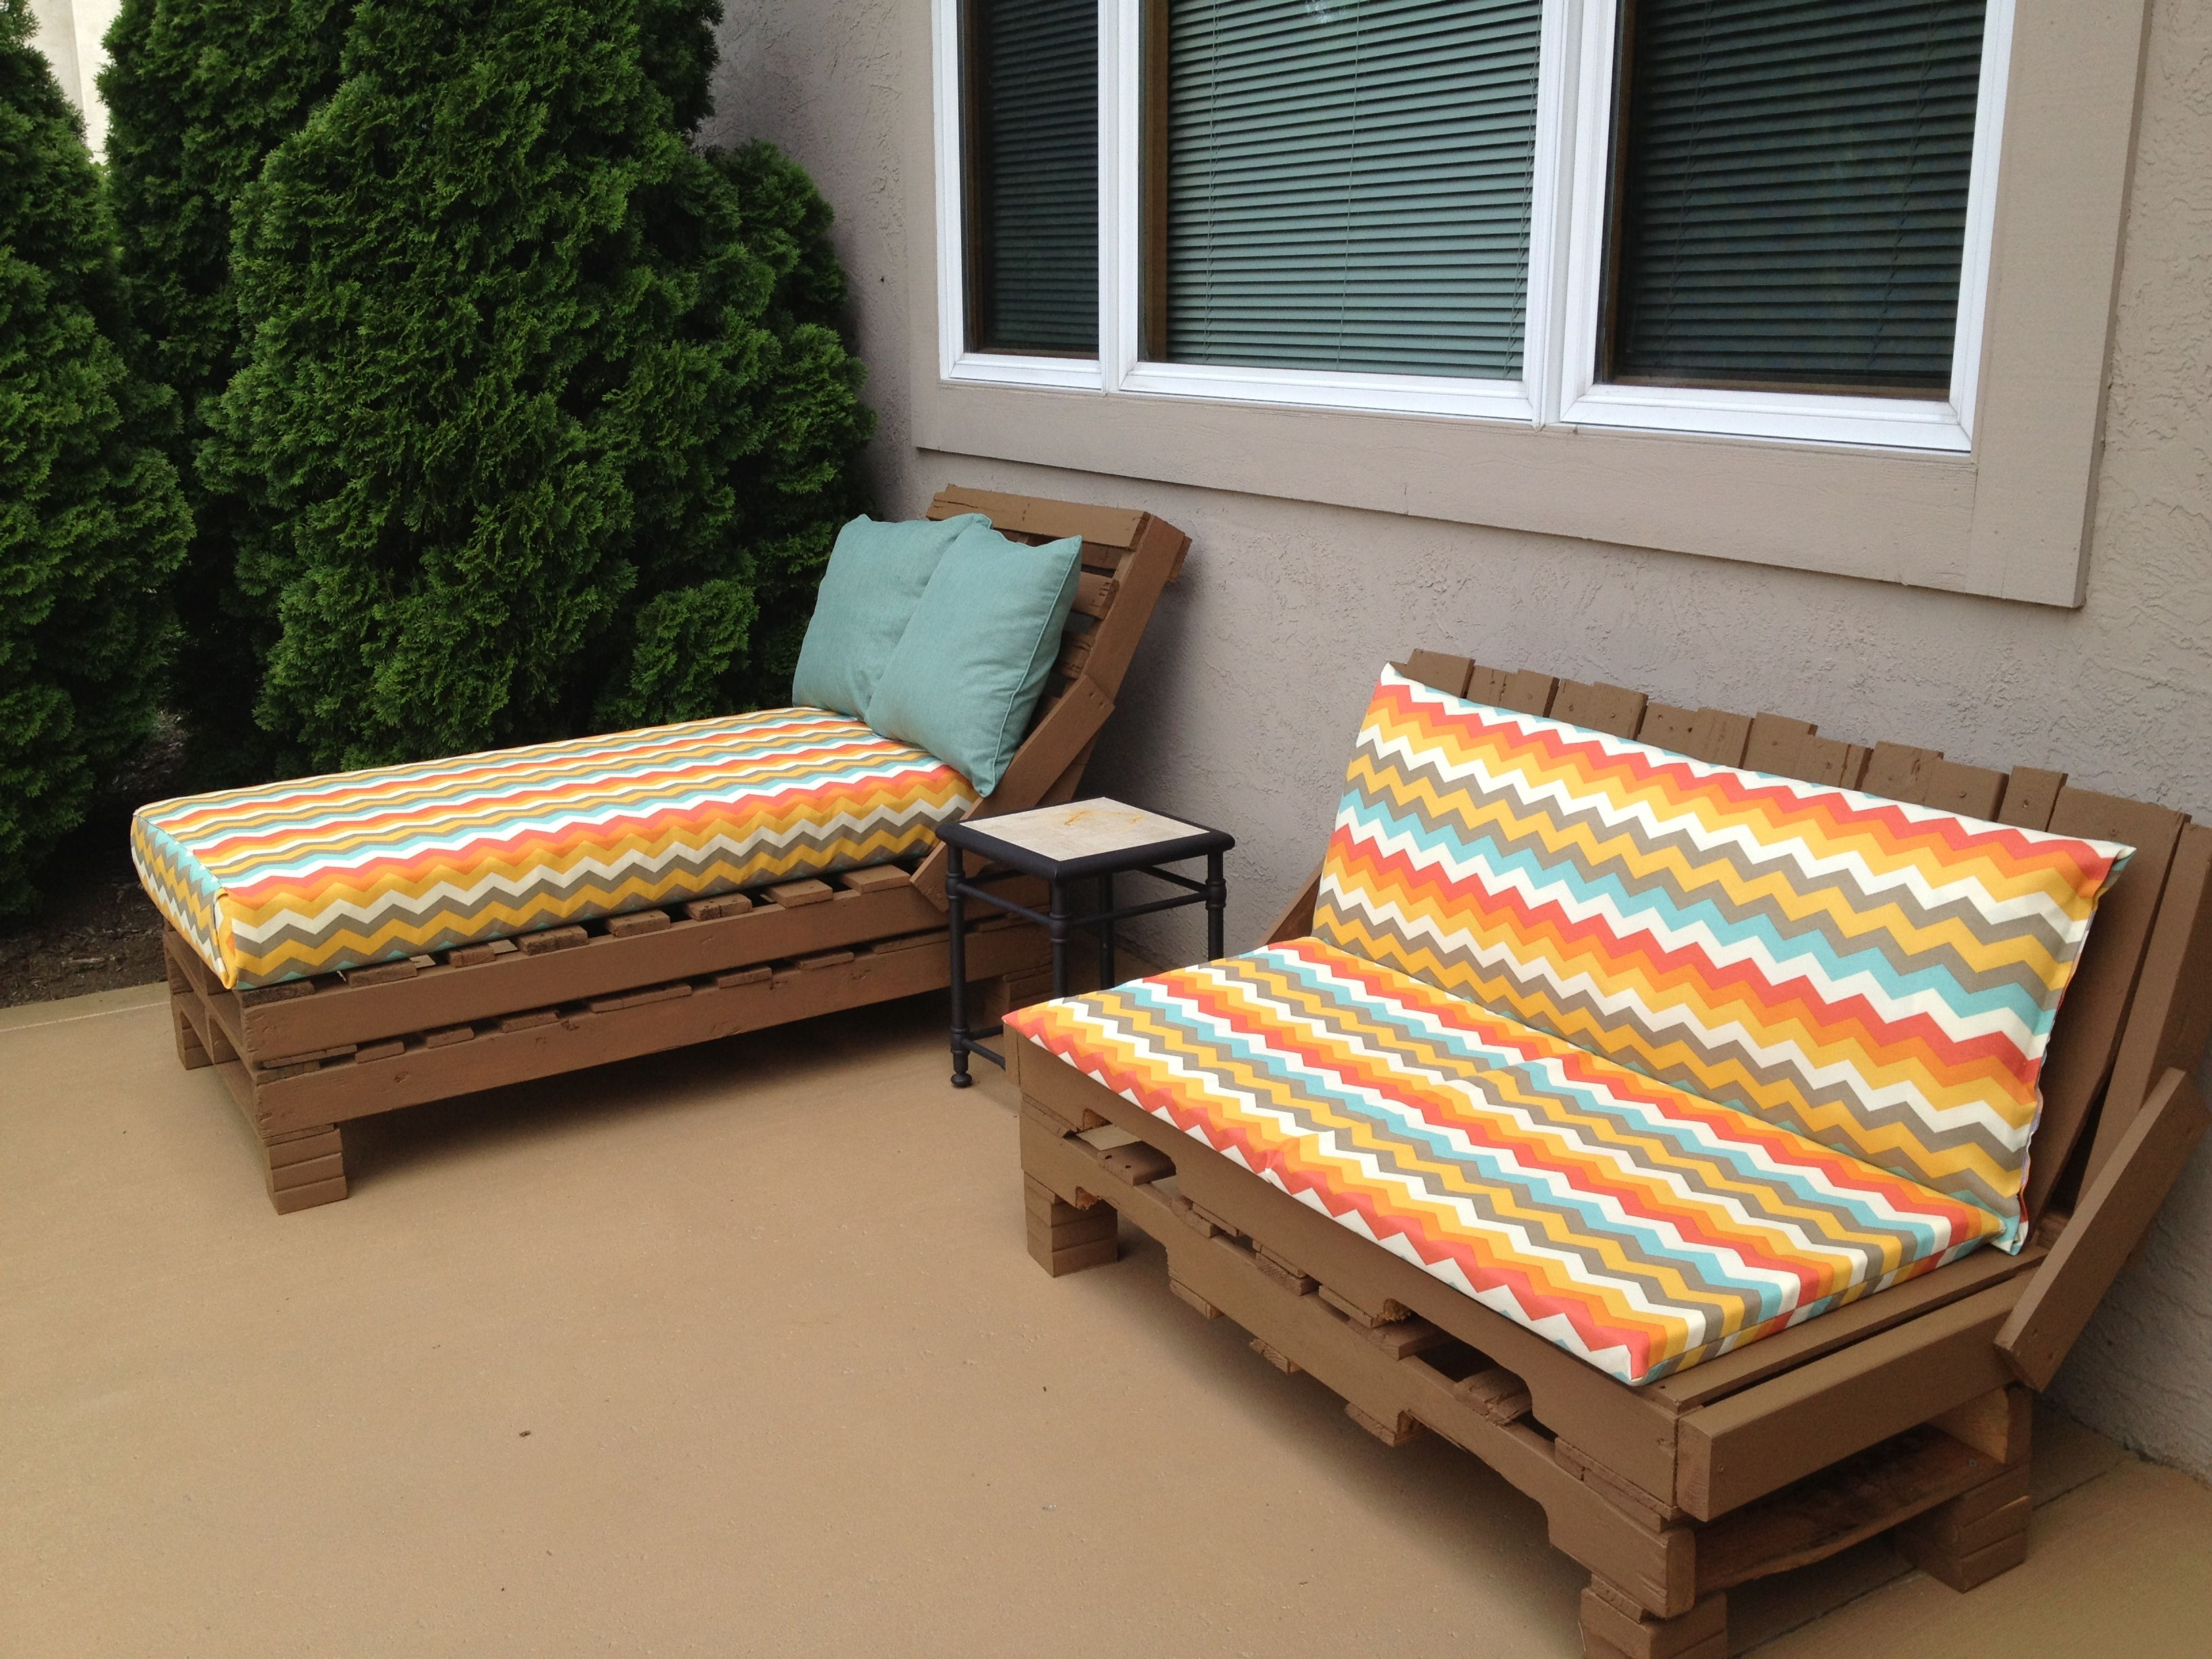 pallet patio furniture so easy stack pallets nail together paint cover - Garden Furniture Crates